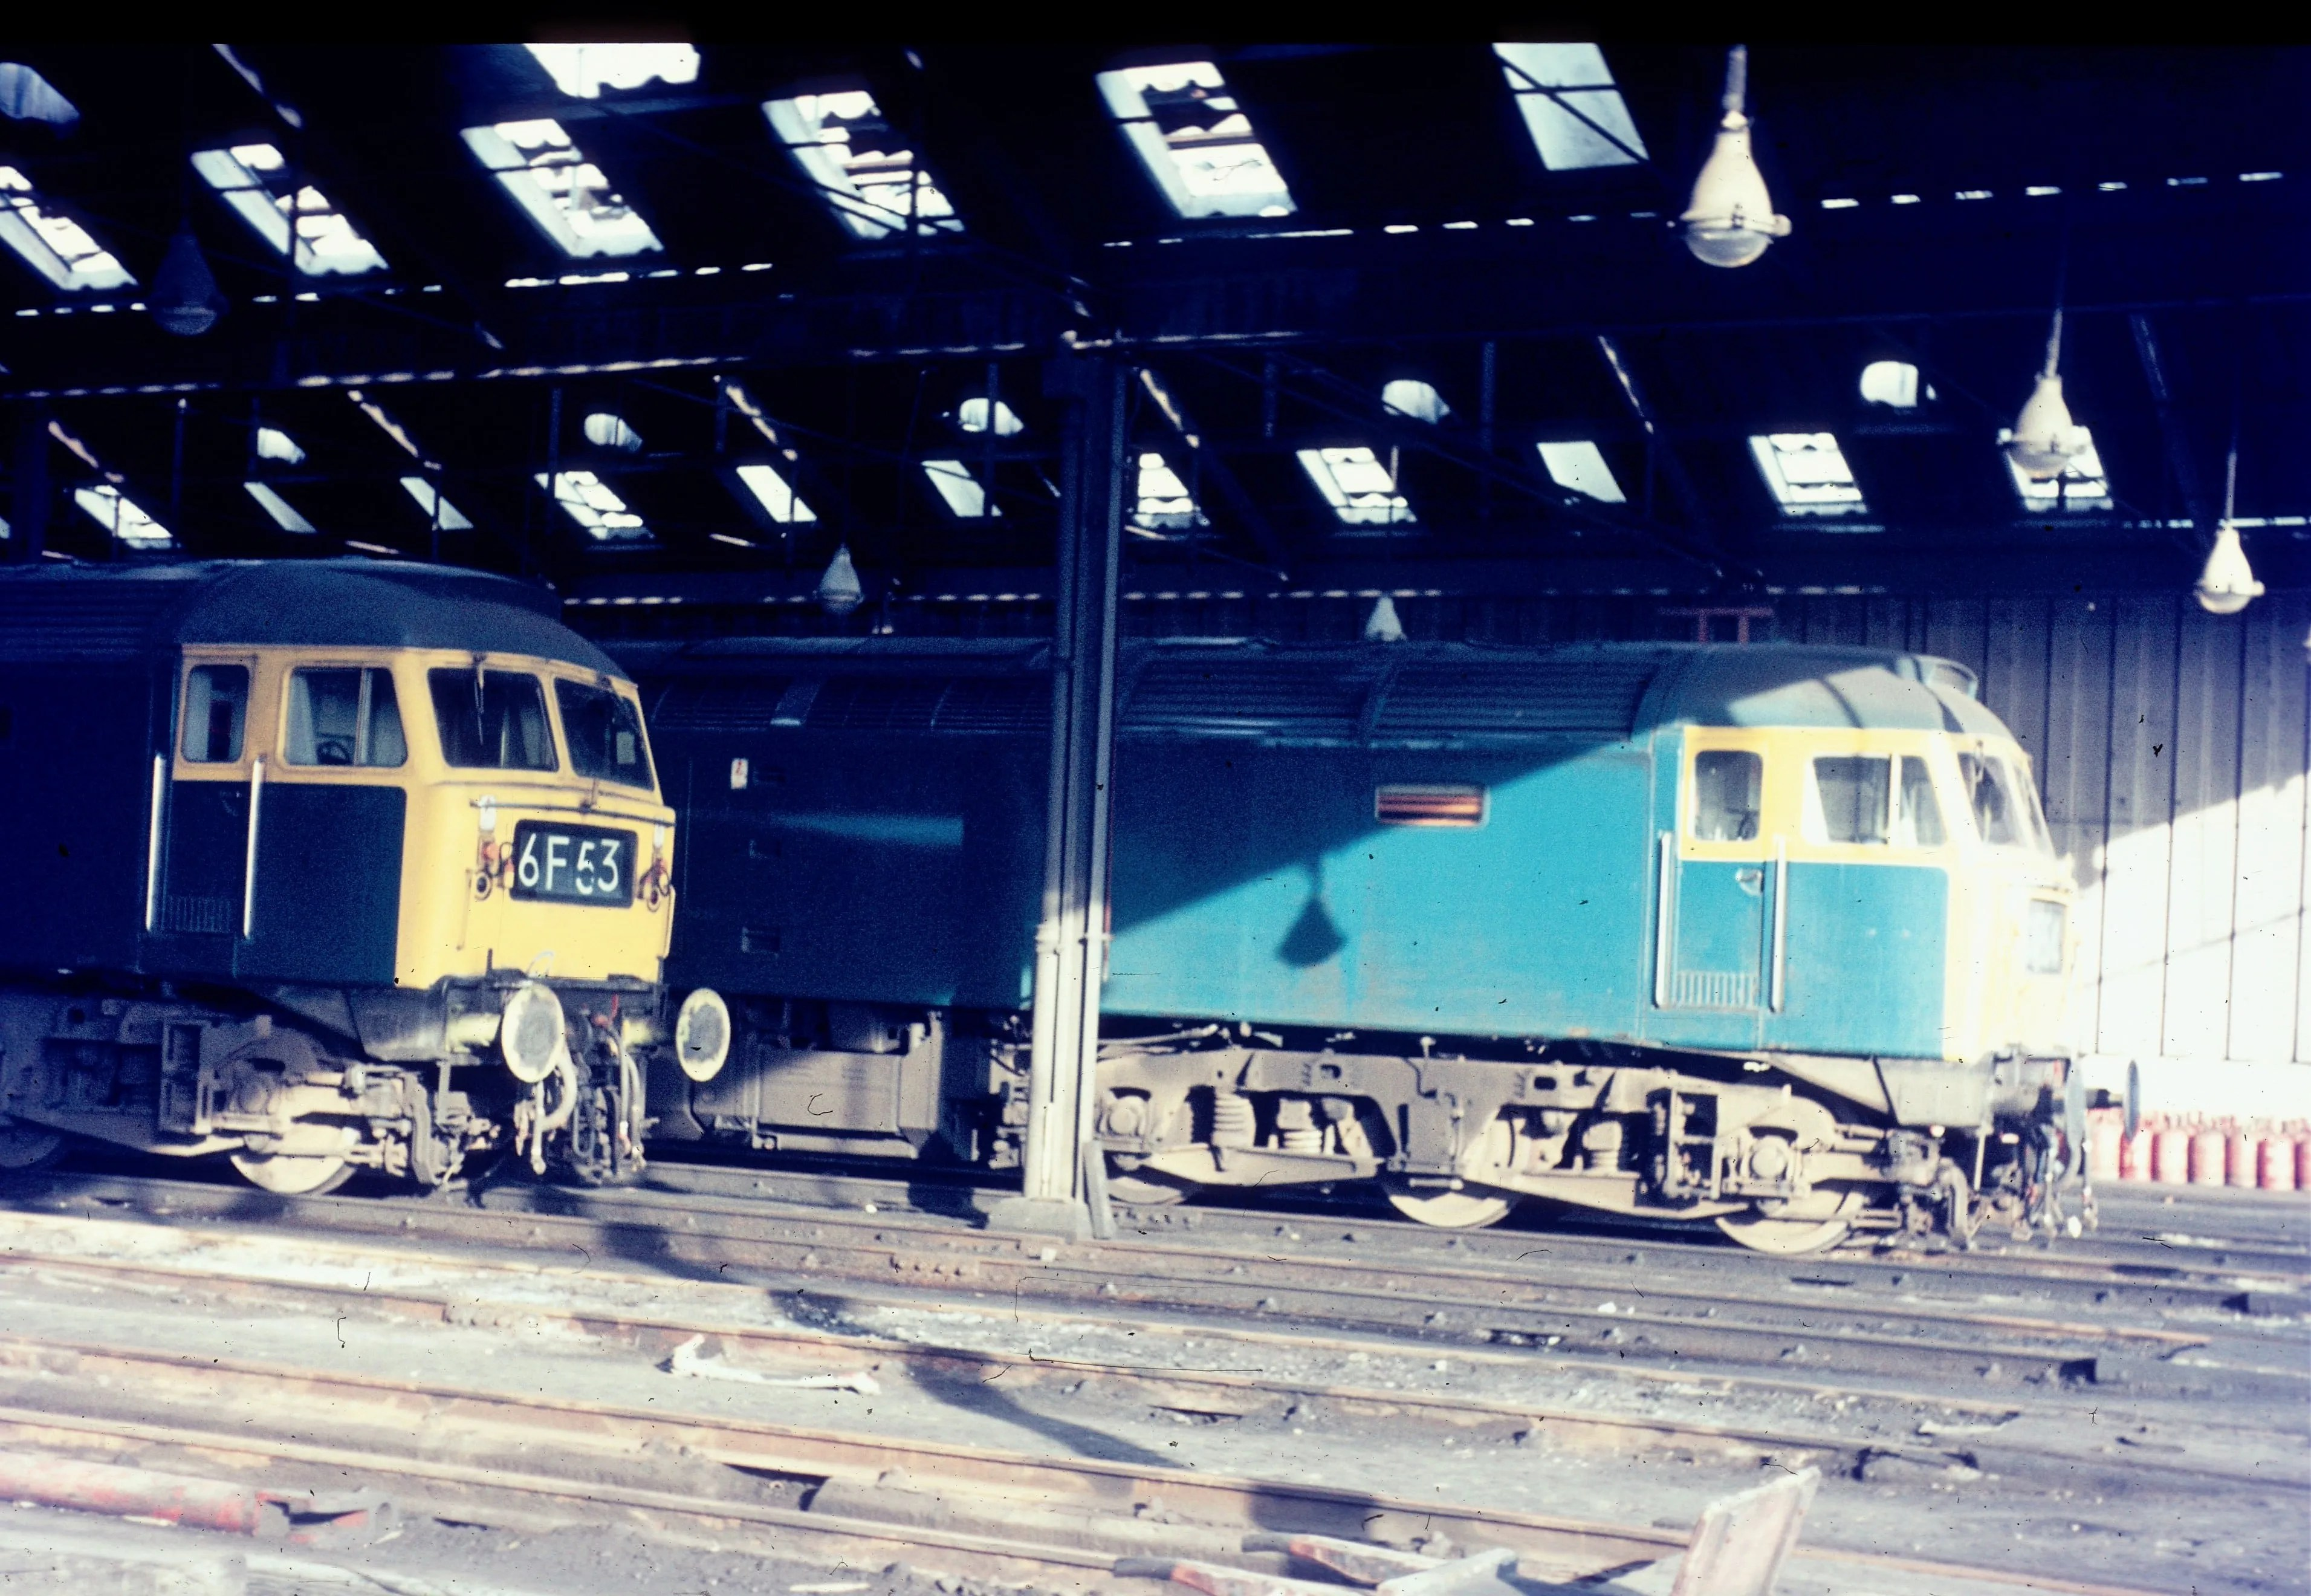 Pair of Class47s diesel locomotives at Polmadie depot